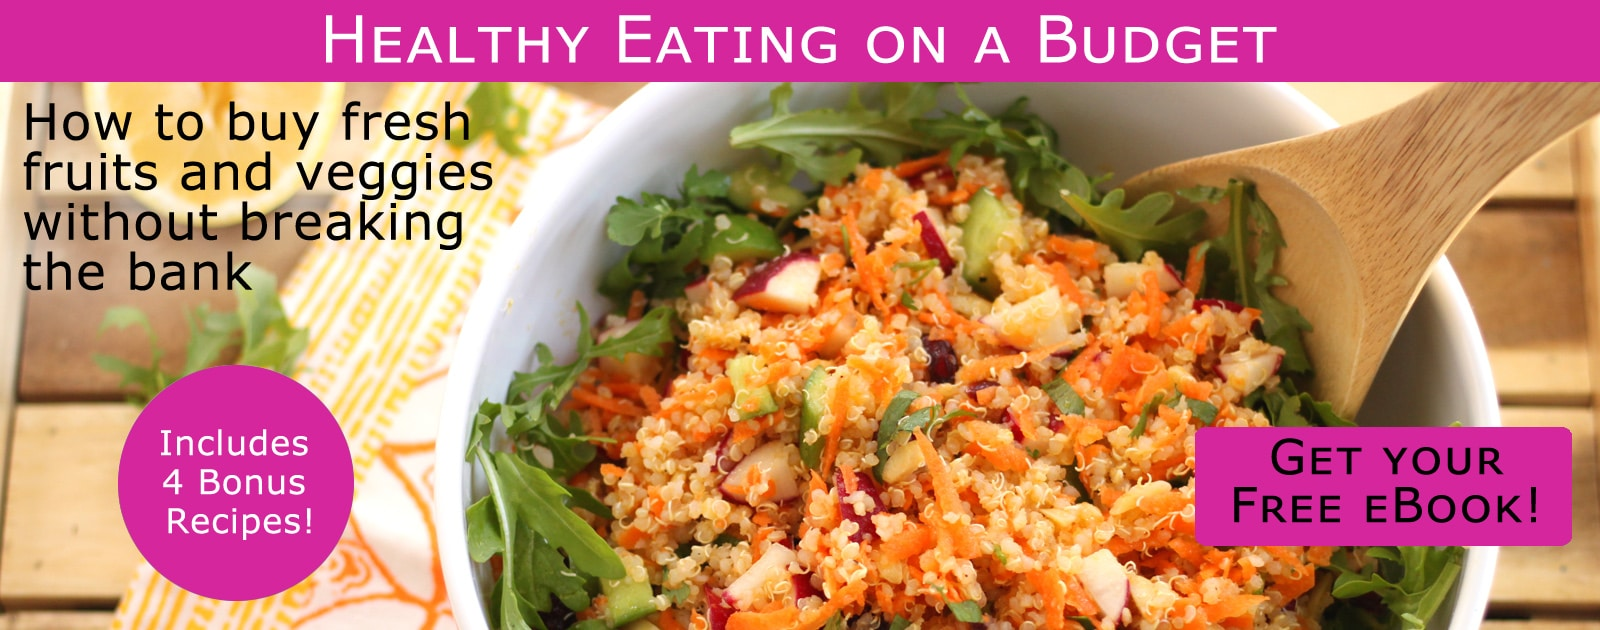 Healthy Eating On A Budget Ebook Get Your Free Copy